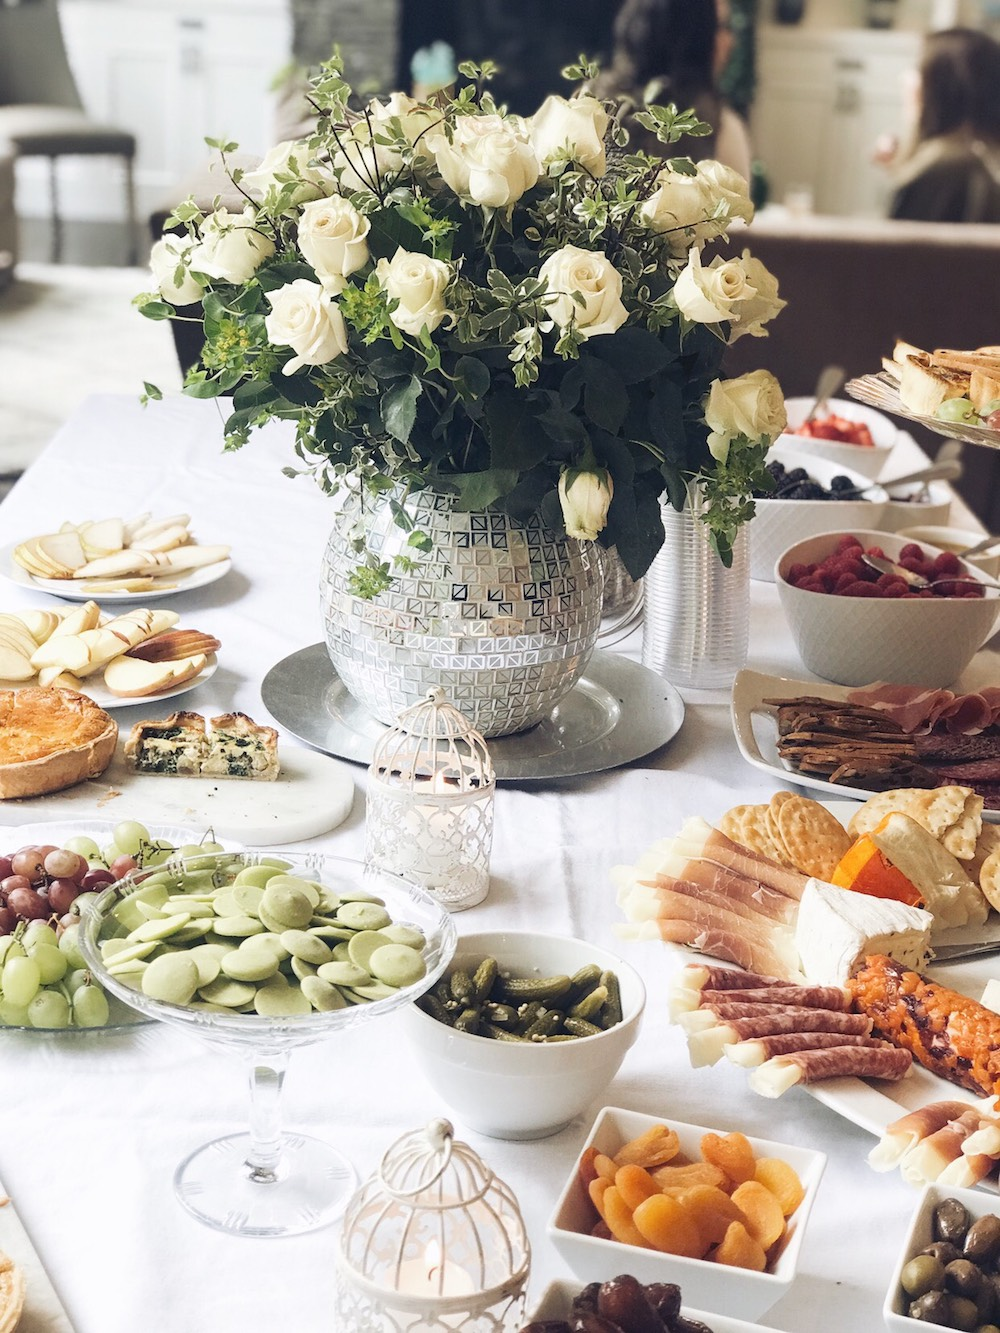 How delish is this spread?!